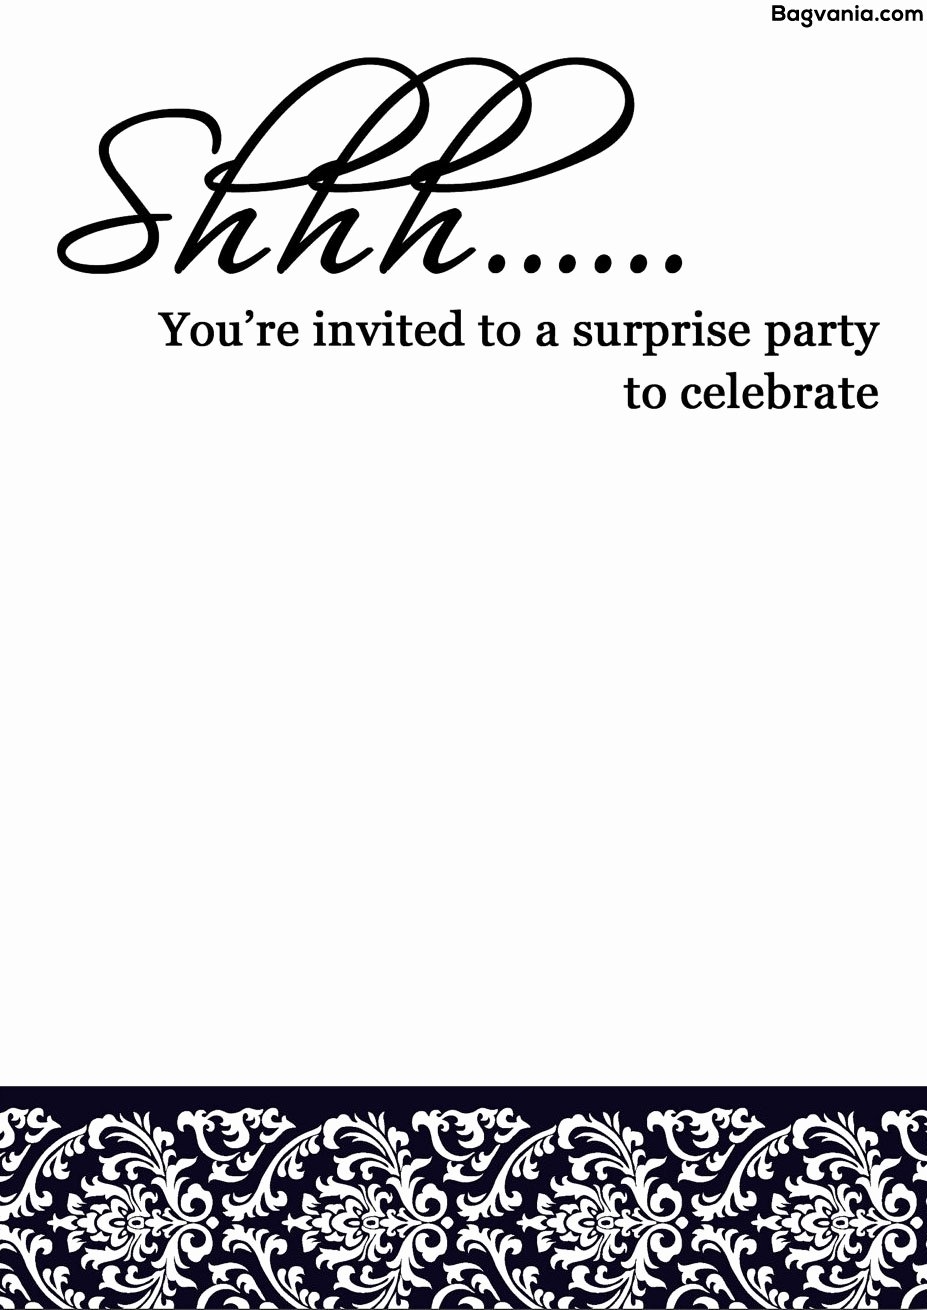 Surprise Party Invitation Templates Beautiful Free Printable Surprise Birthday Invitations – Bagvania Free Printable Invitation Template